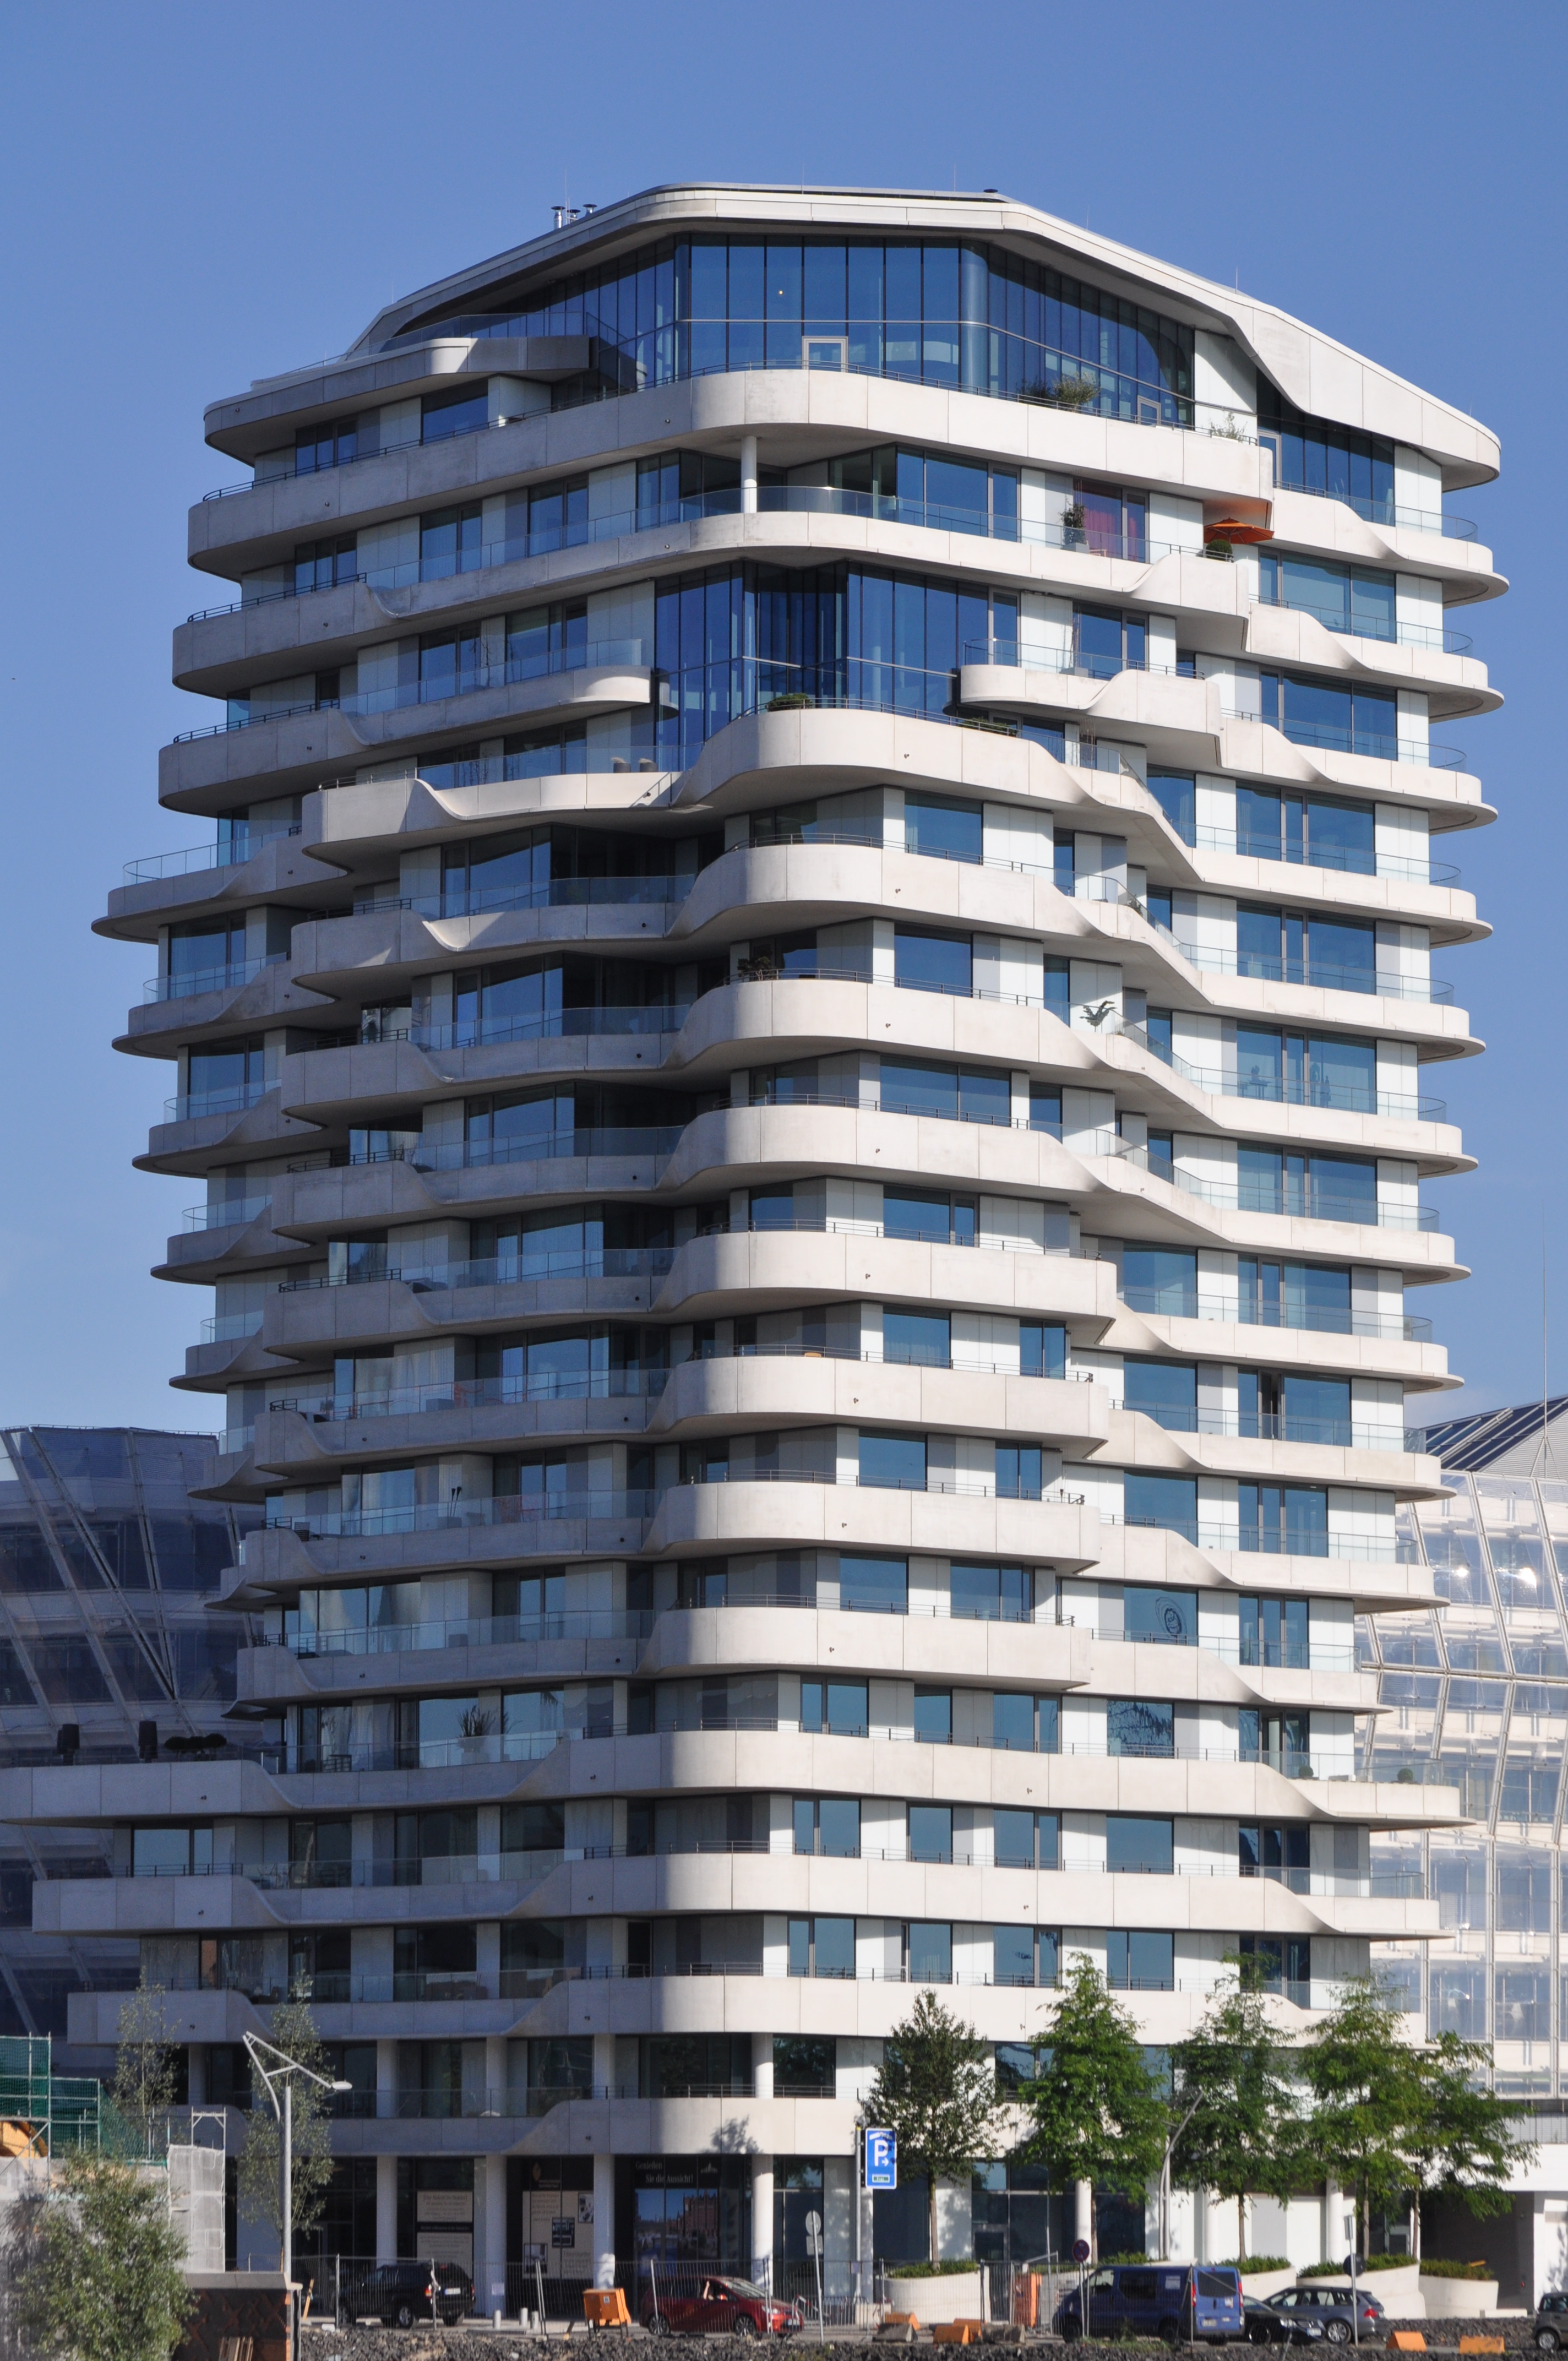 File:Marco-Polo-Tower (Hamburg-HafenCity).ajb.jpg - Wikimedia Commons